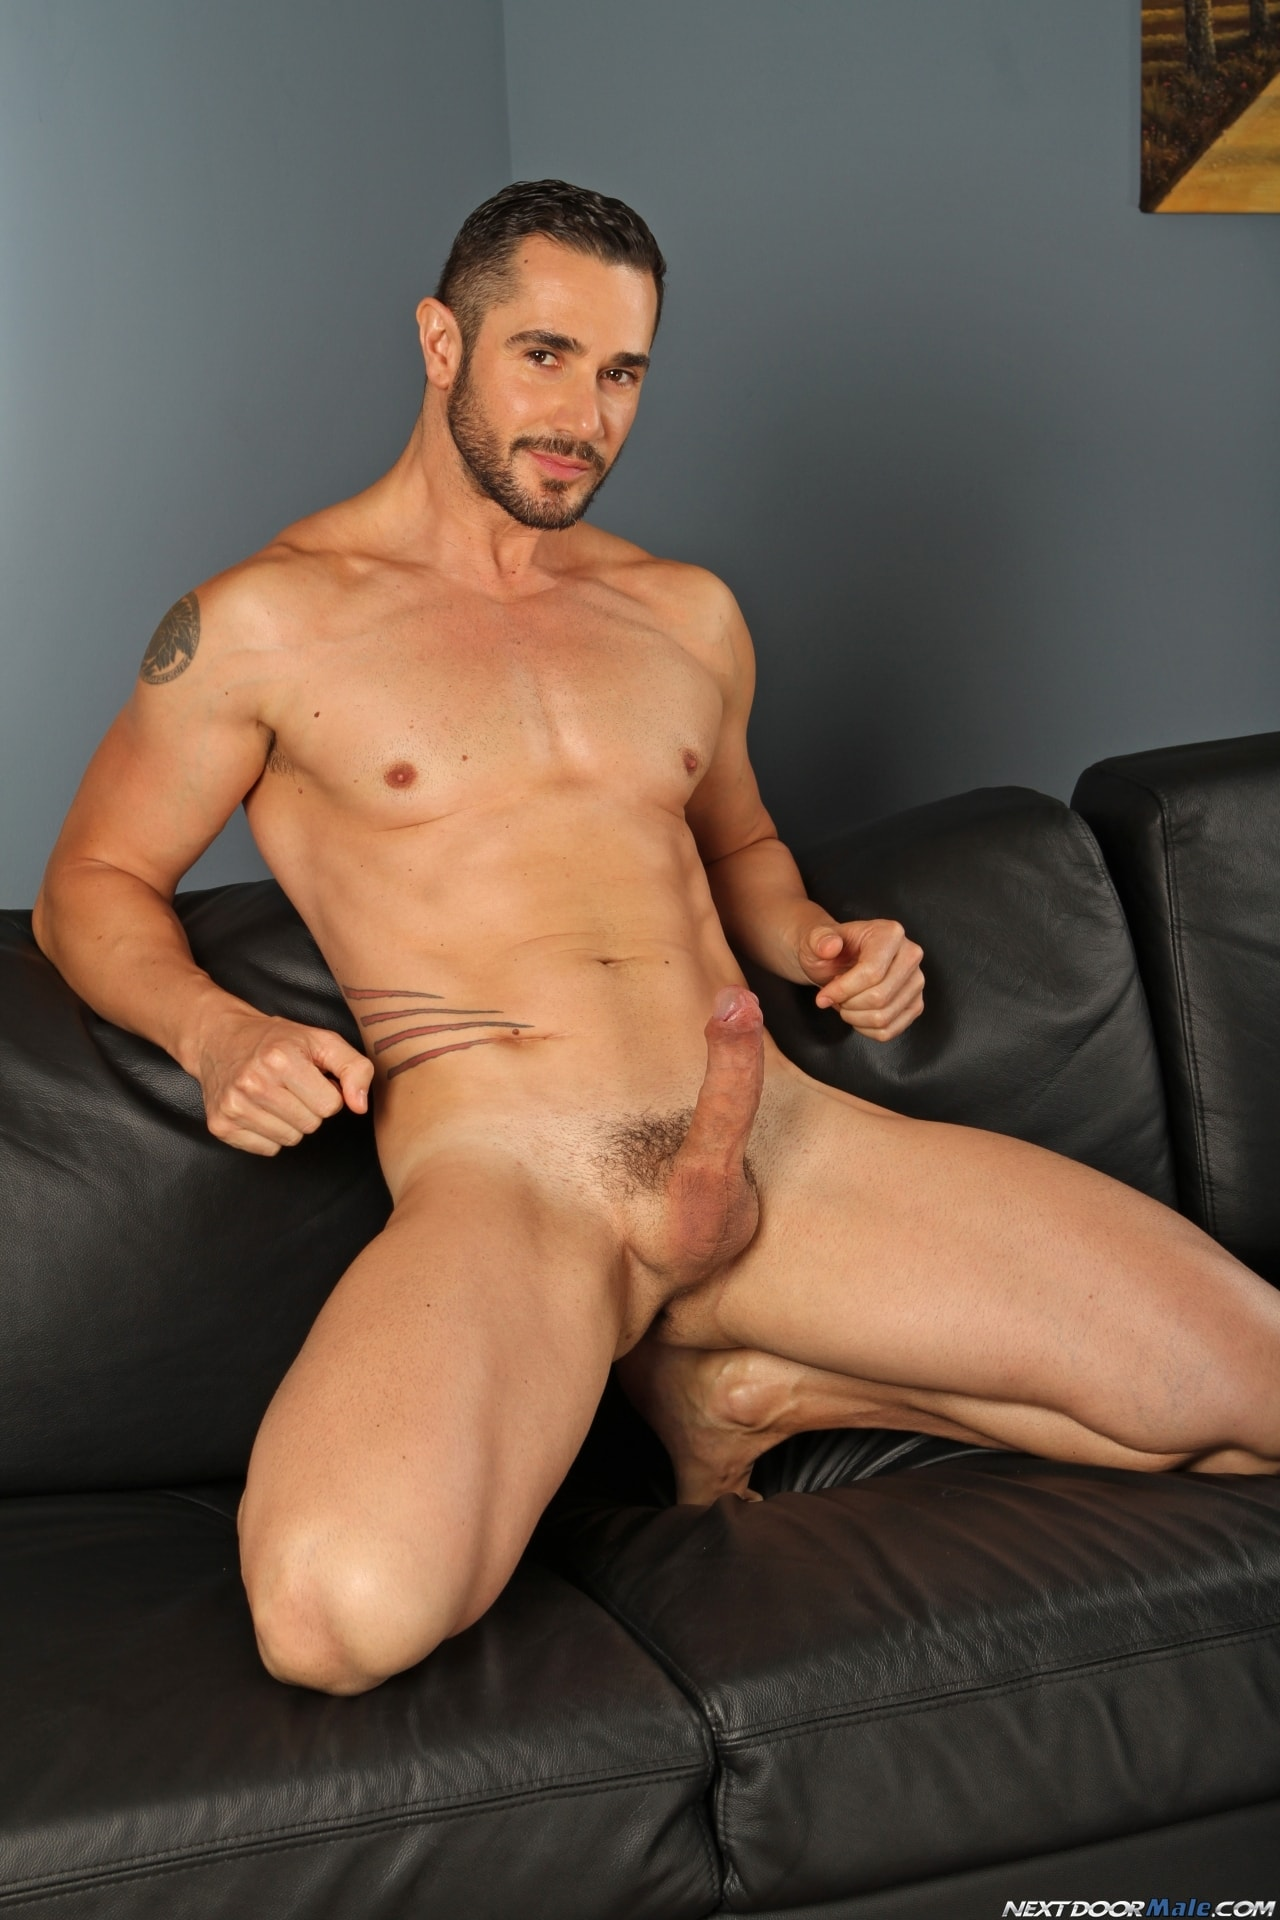 Cock free gay male picture